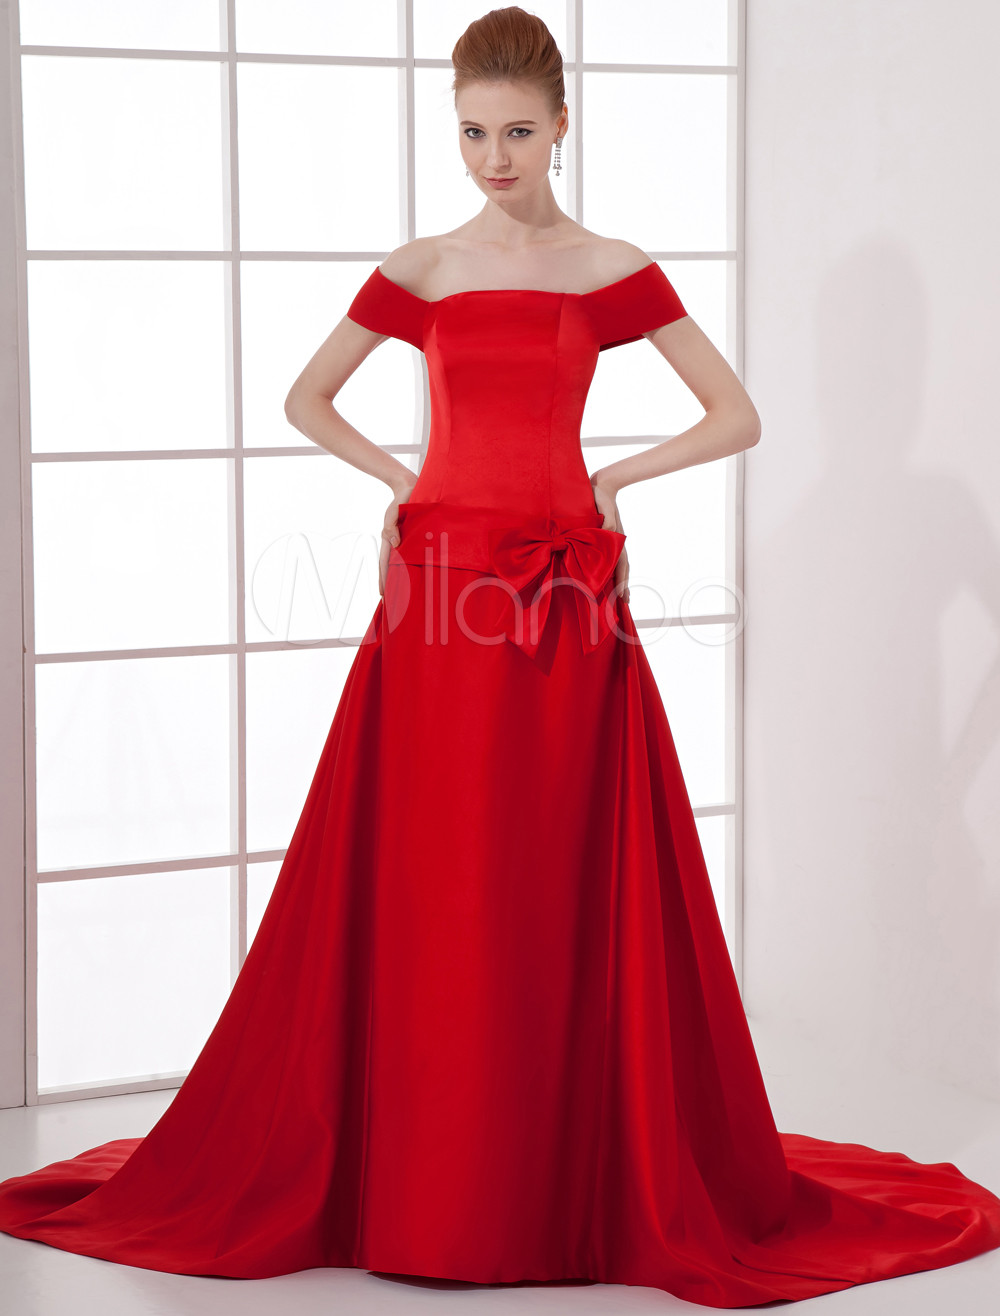 Classic Red Satin Bow Off-The-Shoulder Women's Evening Dress